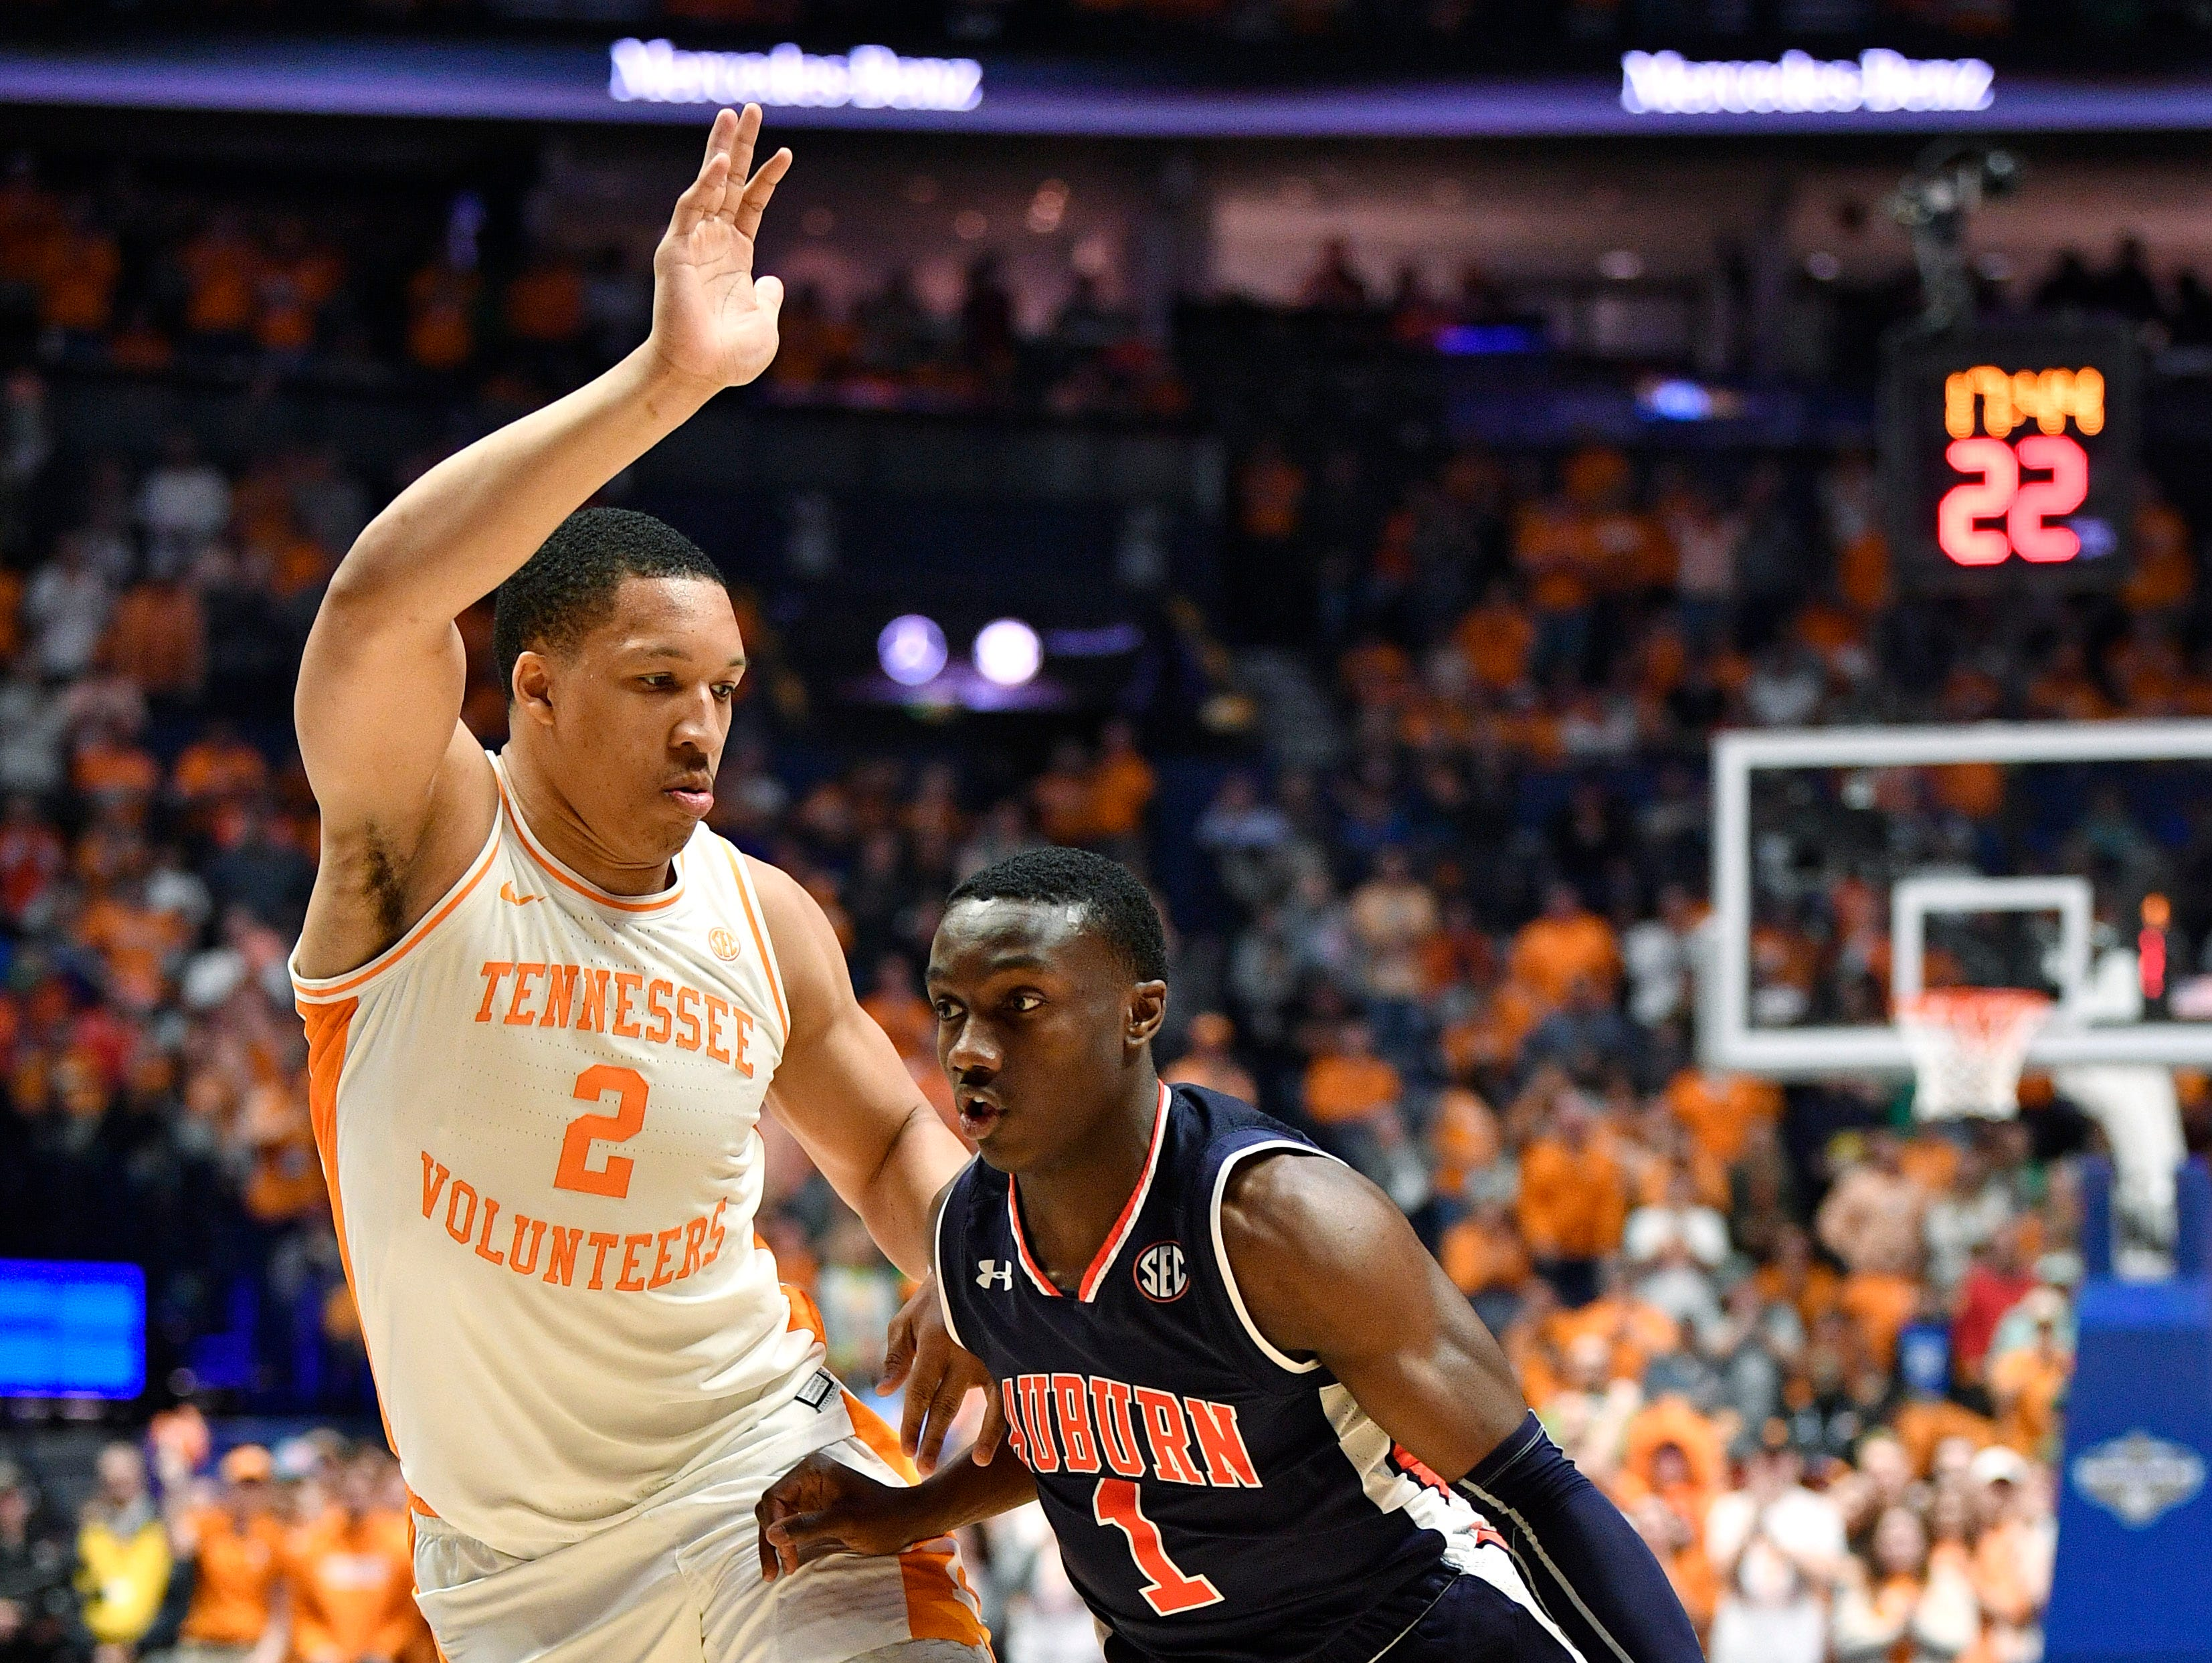 Auburn guard Jared Harper (1) drives to the basket defended by Tennessee forward Grant Williams (2) during the second half of the SEC Men's Basketball Tournament championship game at Bridgestone Arena in Nashville, Tenn., Sunday, March 17, 2019.